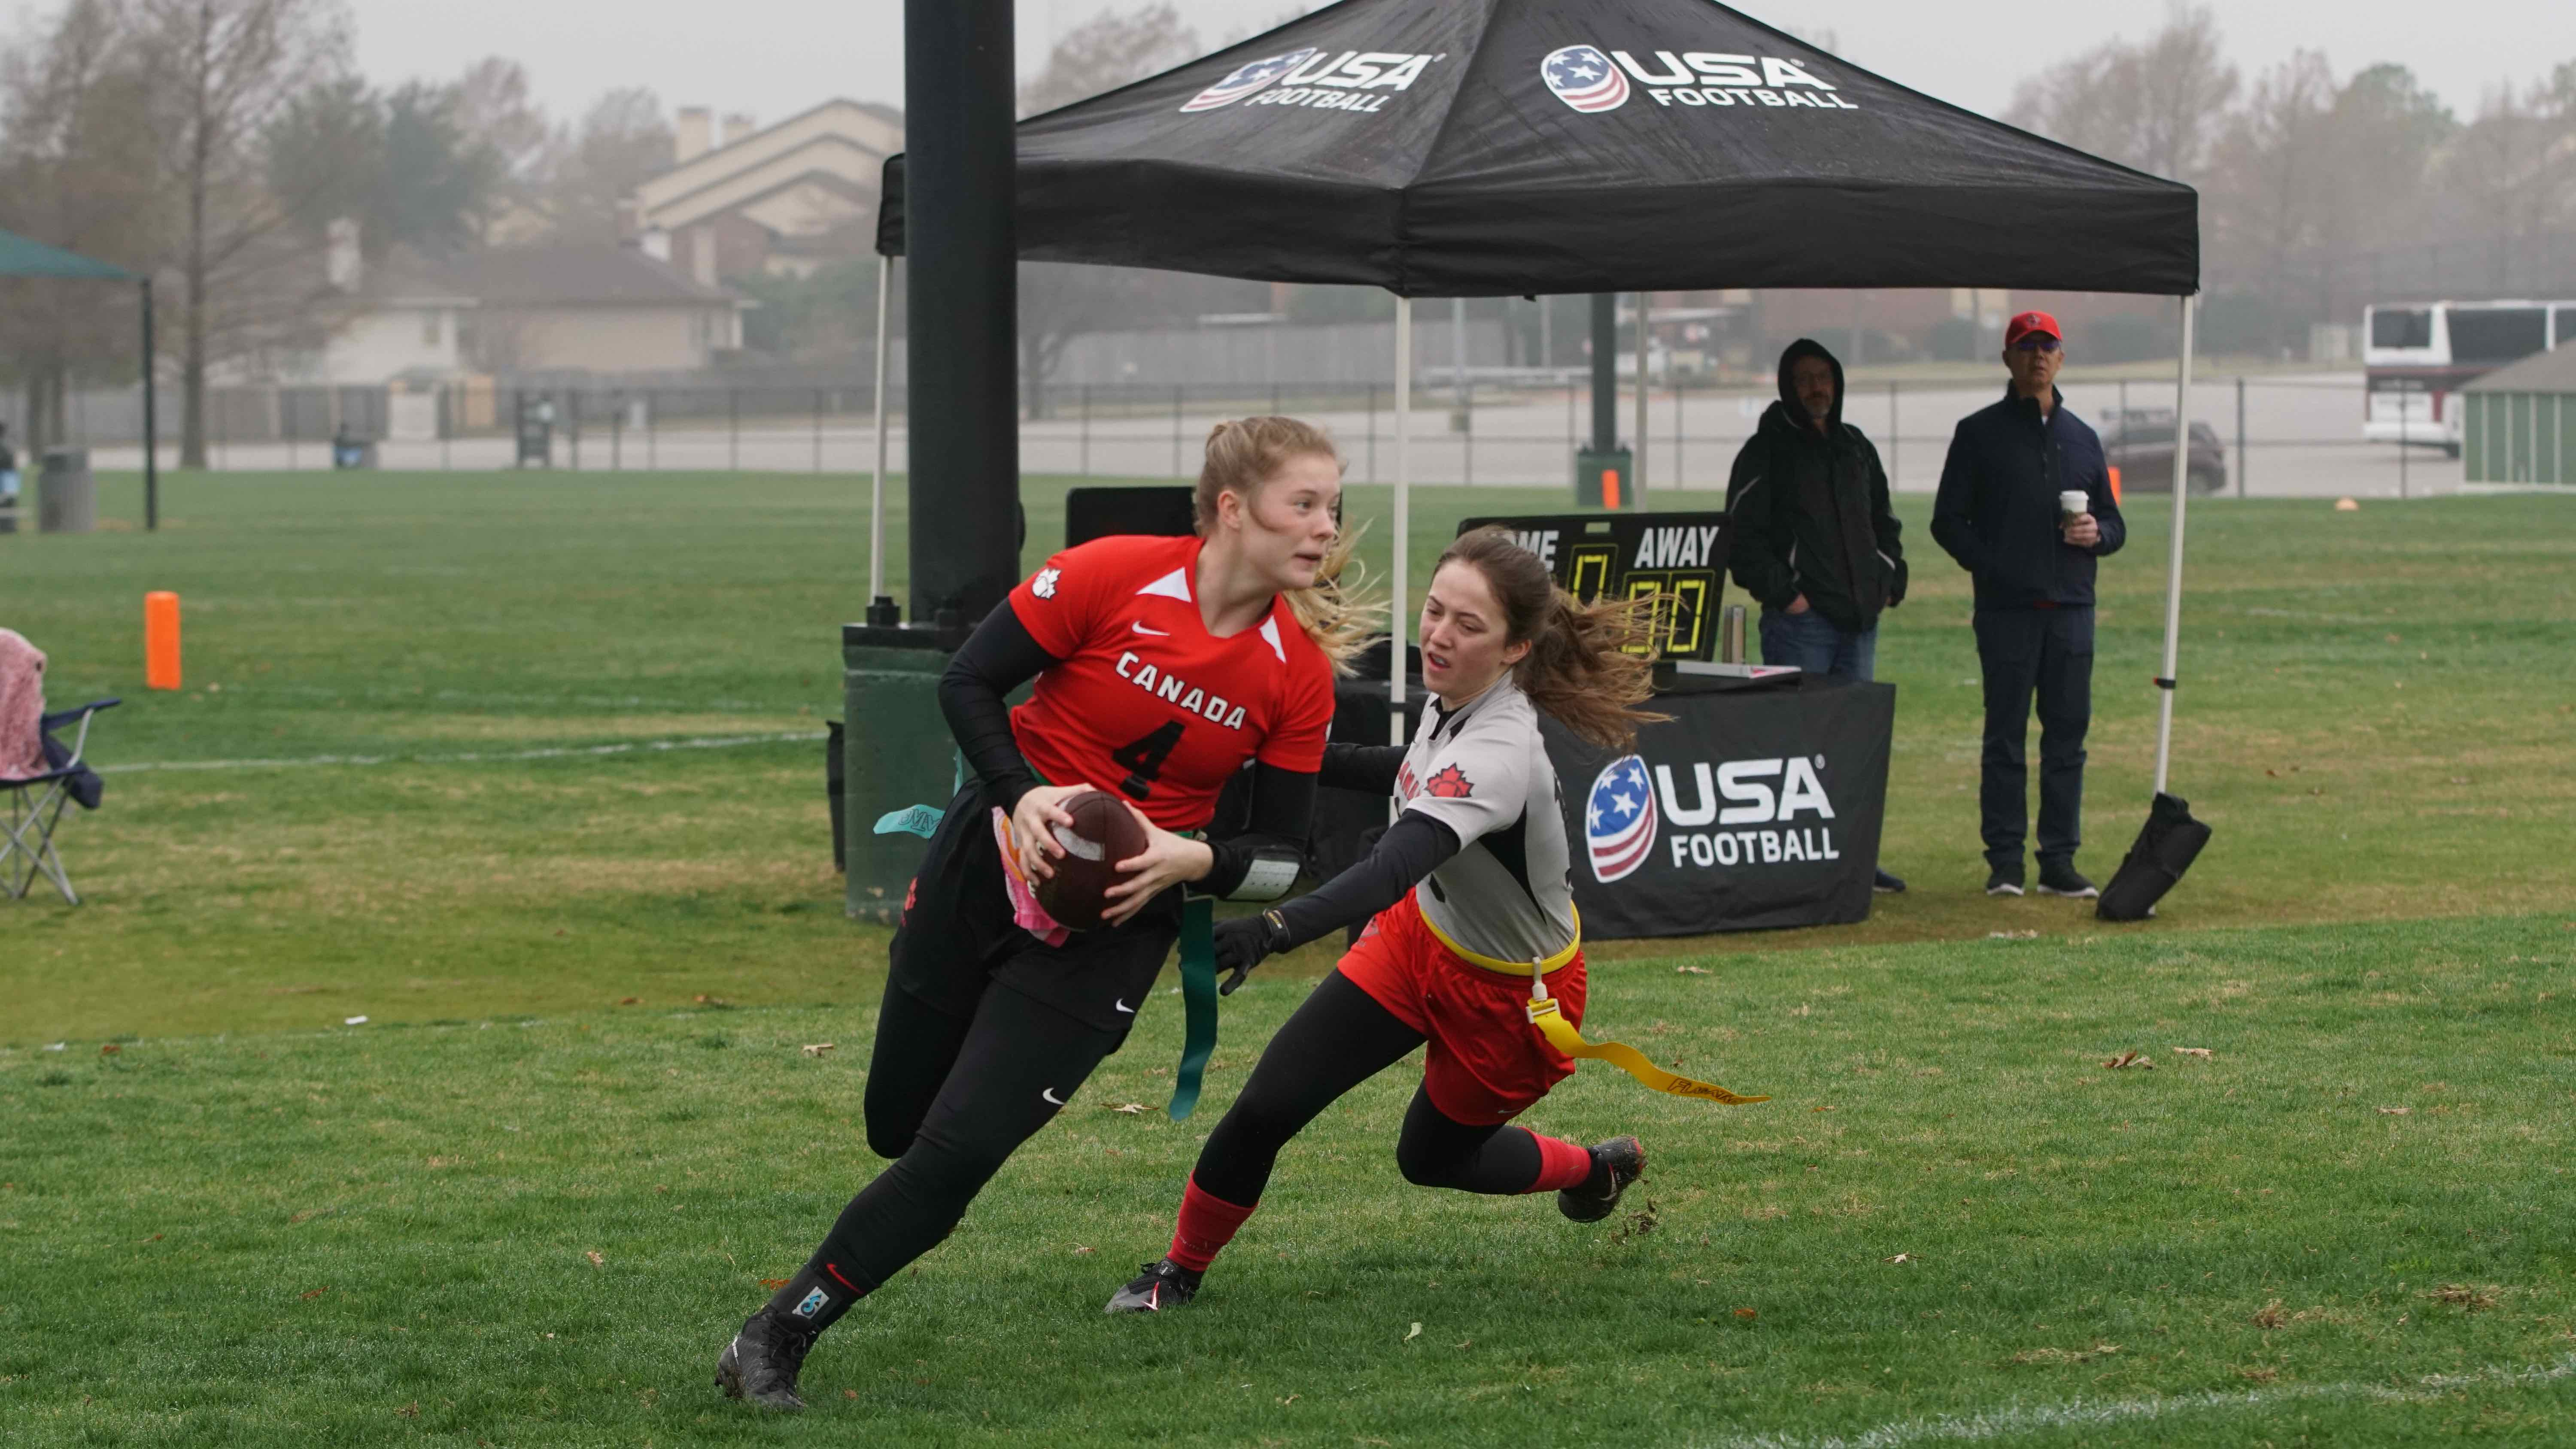 Canadian Flag Teams show competitive fire at 2020 International Bowl